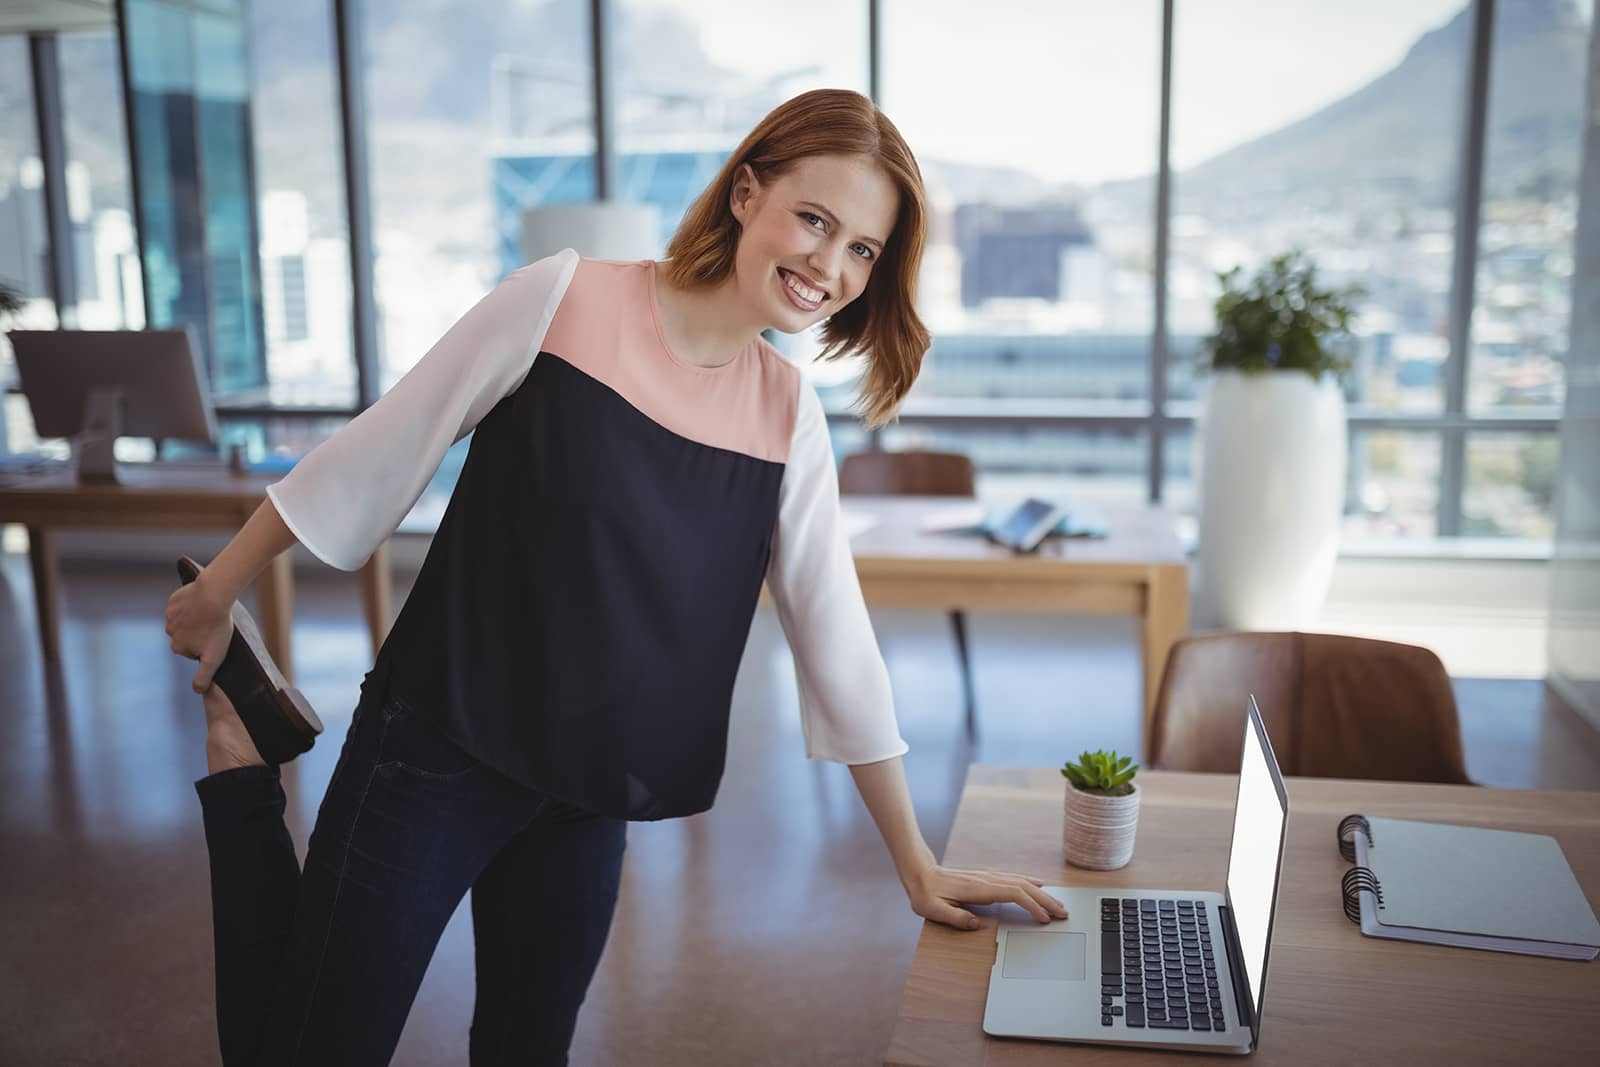 Physical Support for Employees Returning to Work or Still Telecommuting